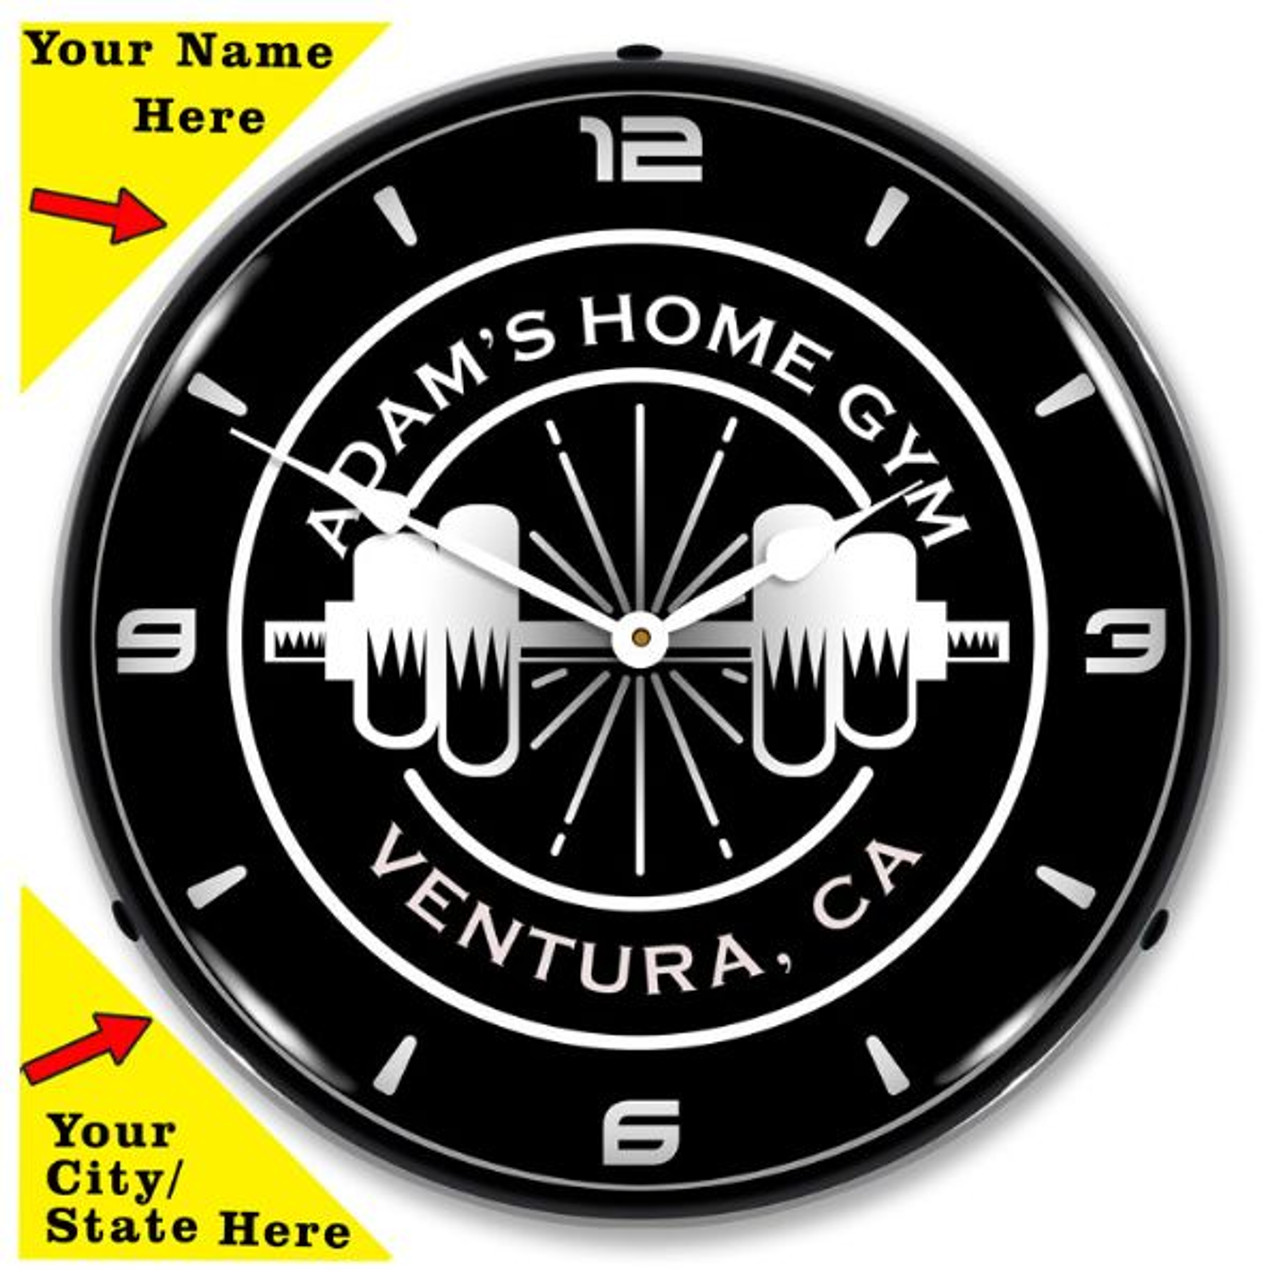 Personalized Home Gym LED Lighted Wall Clock 14 x 14 Inches (Add Your Name /City/State)